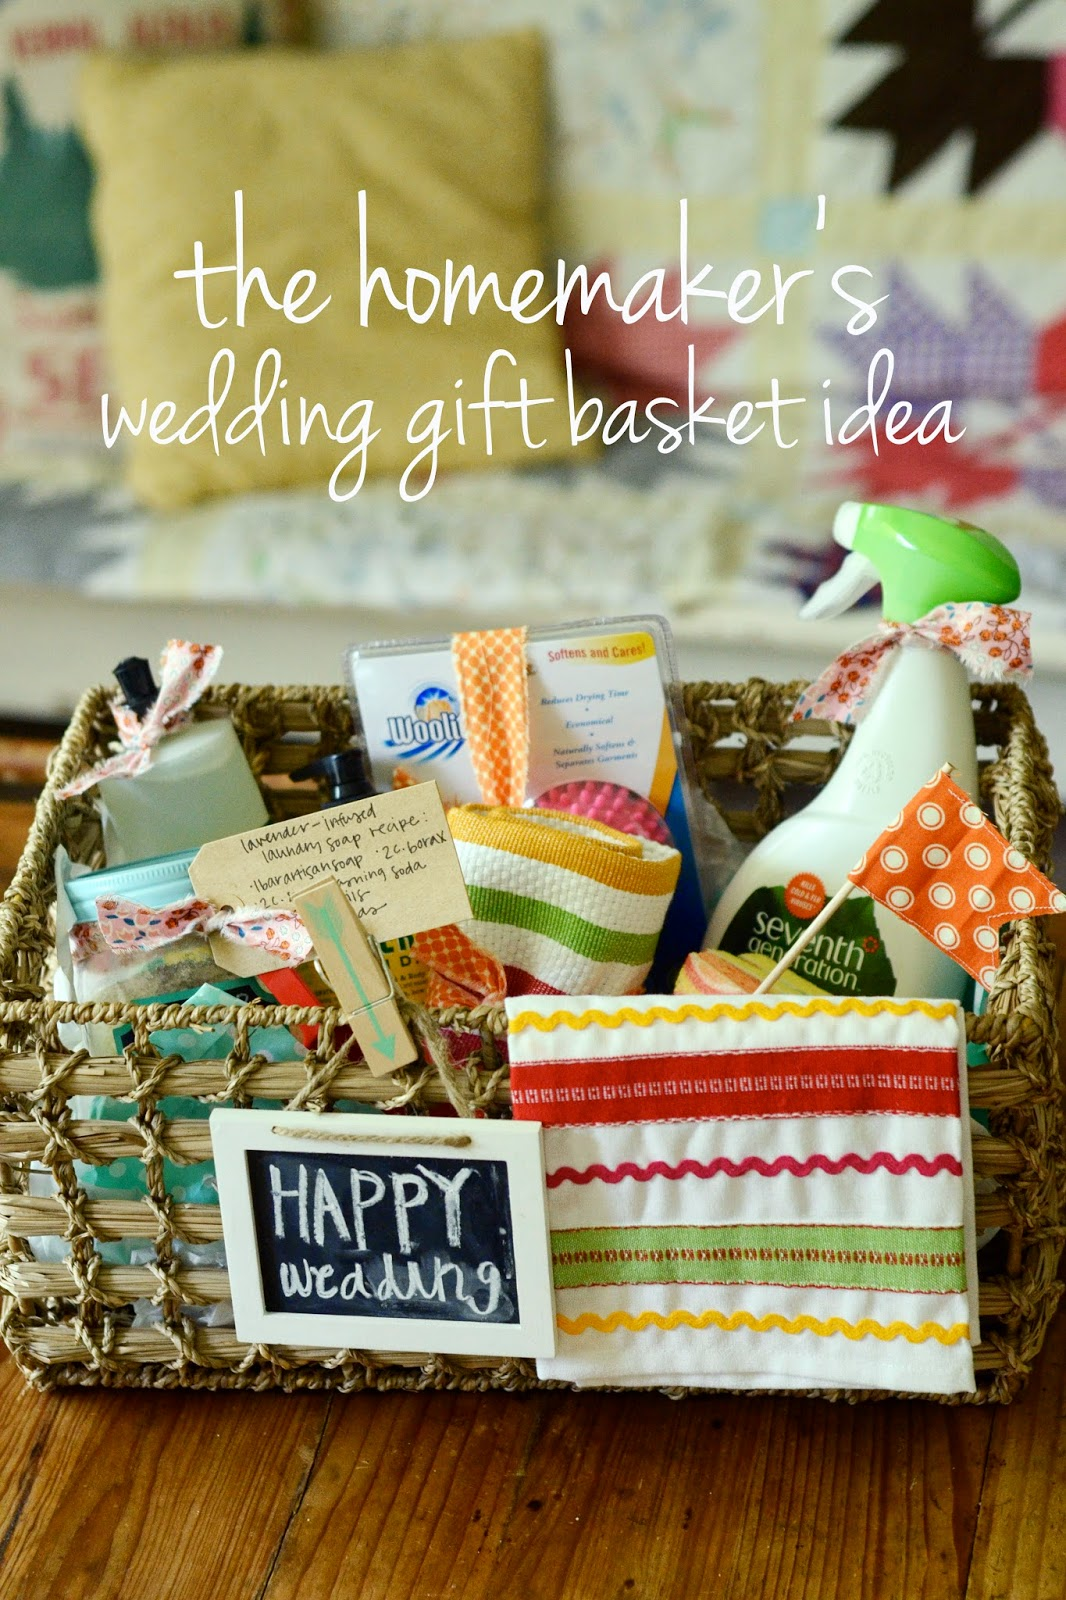 ... creates: the homemakers wedding gift basket idea for under USD25